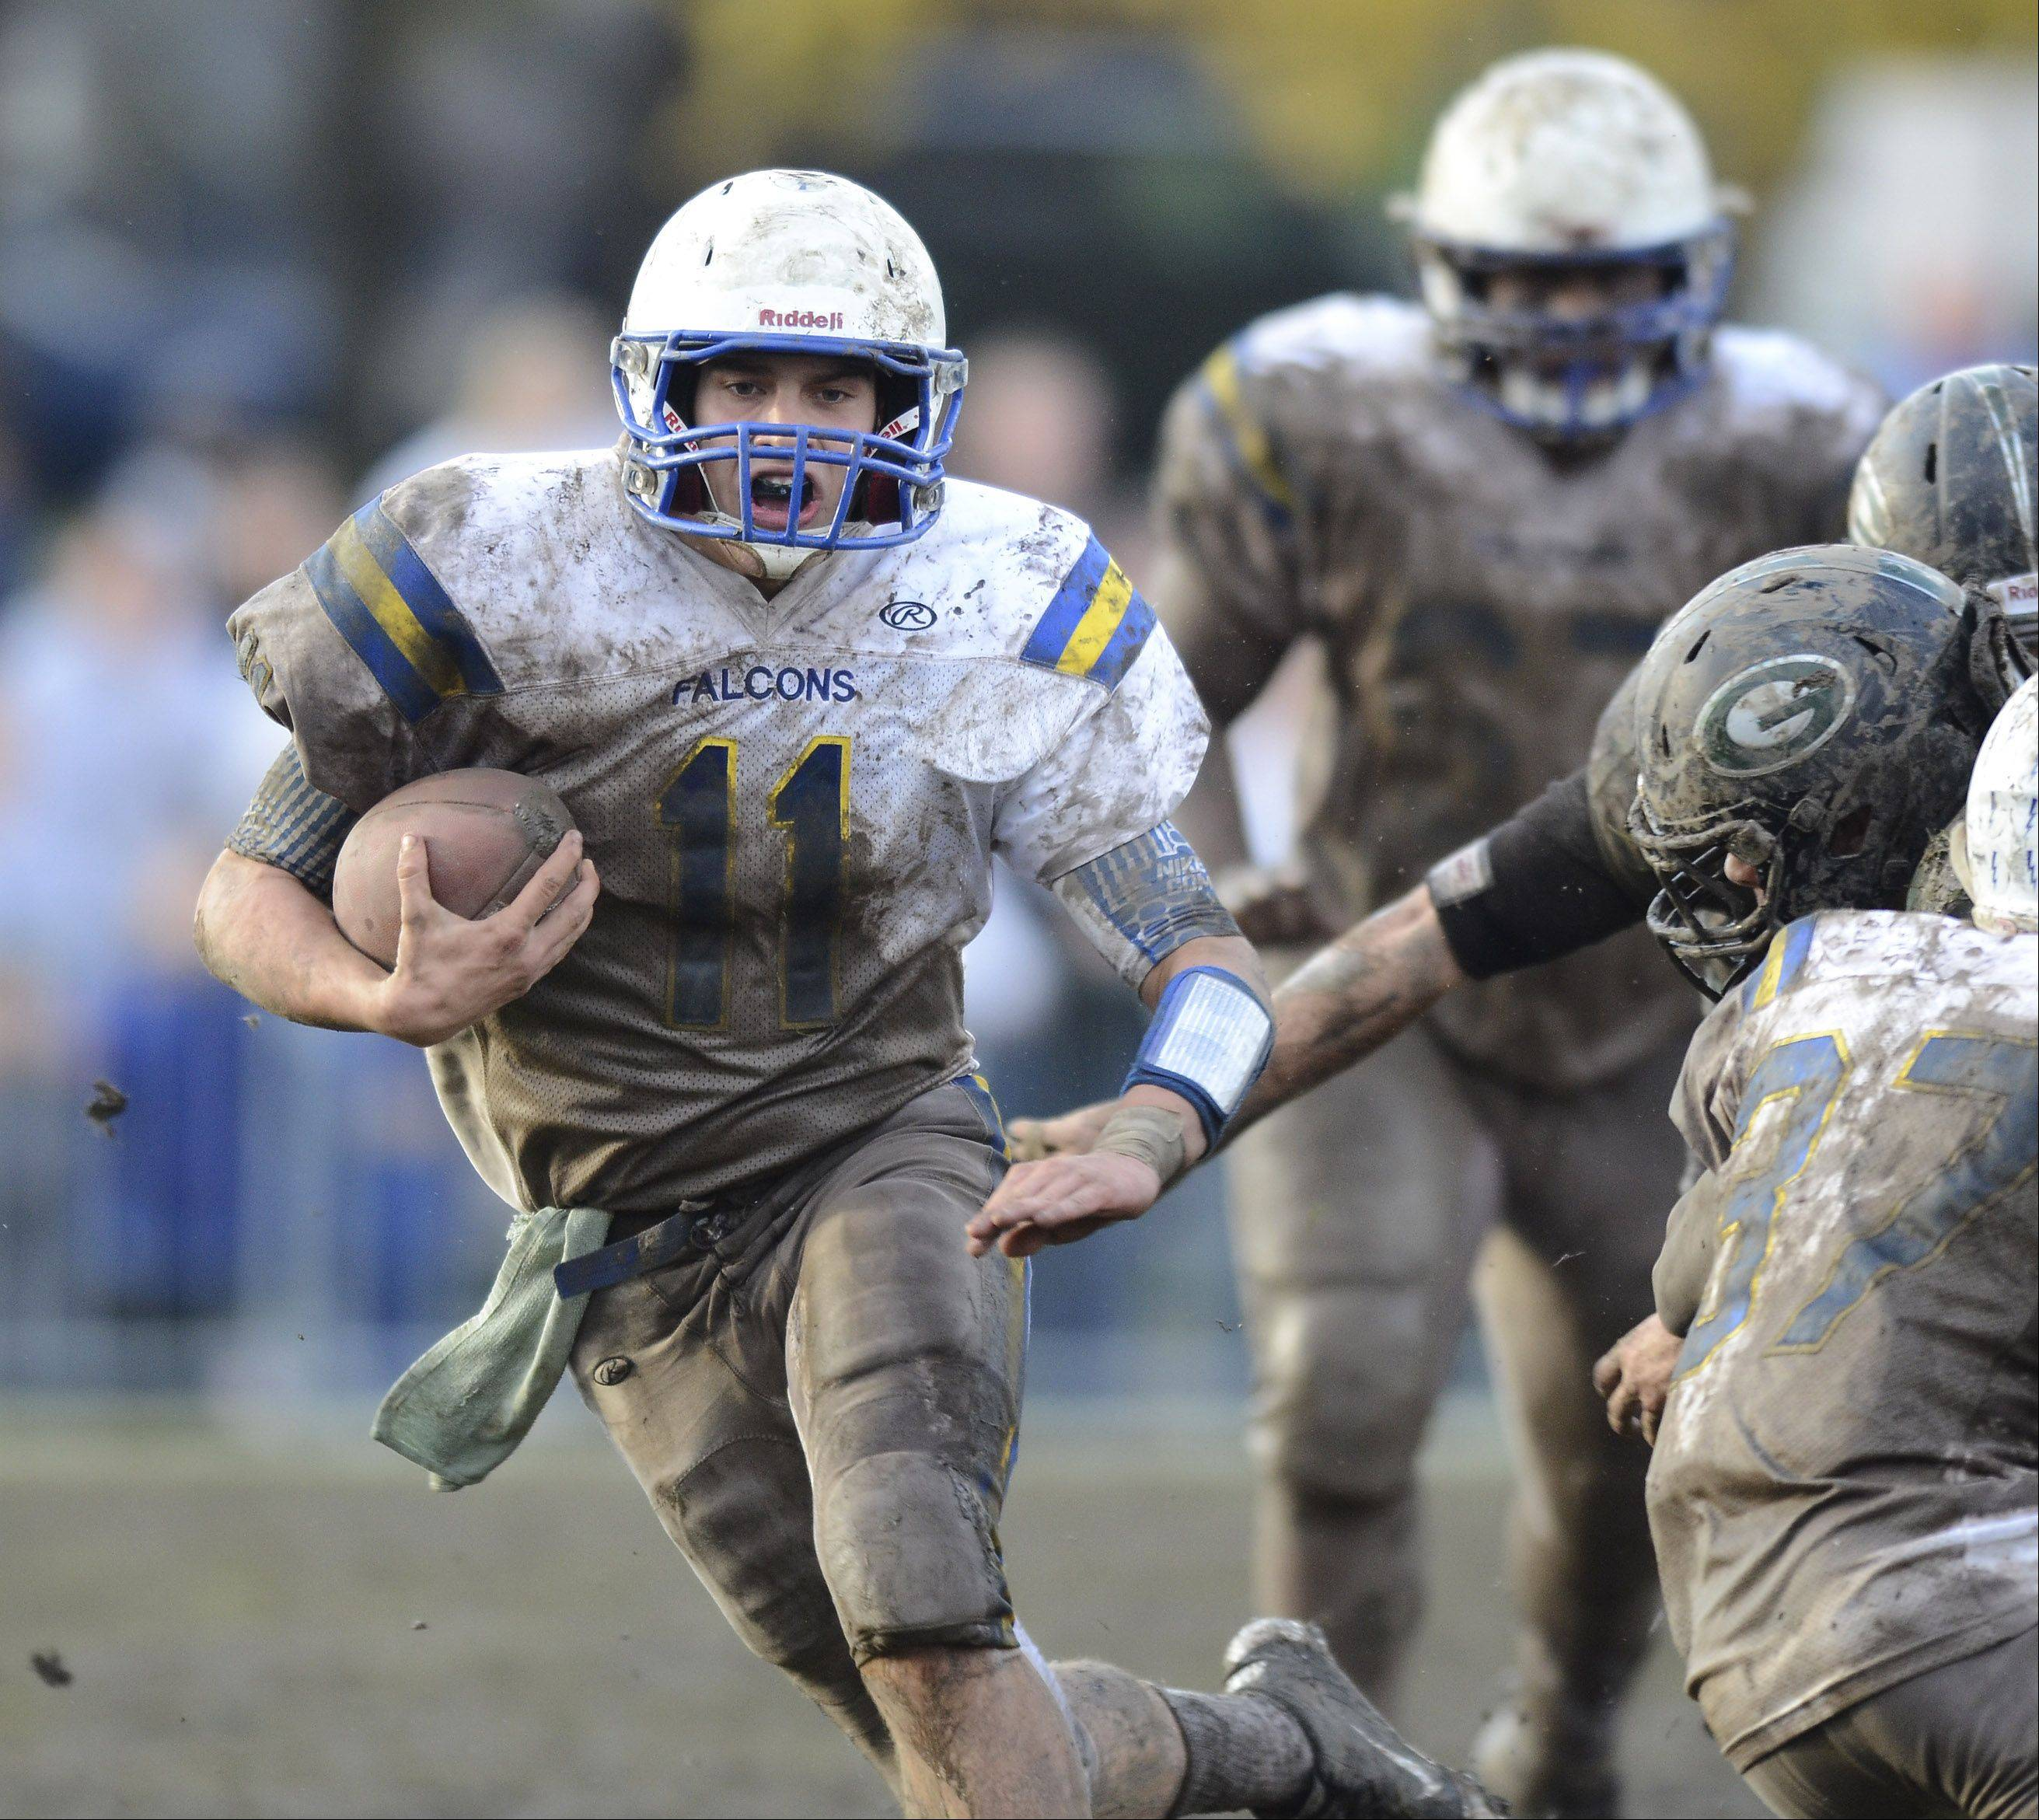 Wheaton North quarterback John Peltz carries the ball during Saturday's game against Glenbard West.